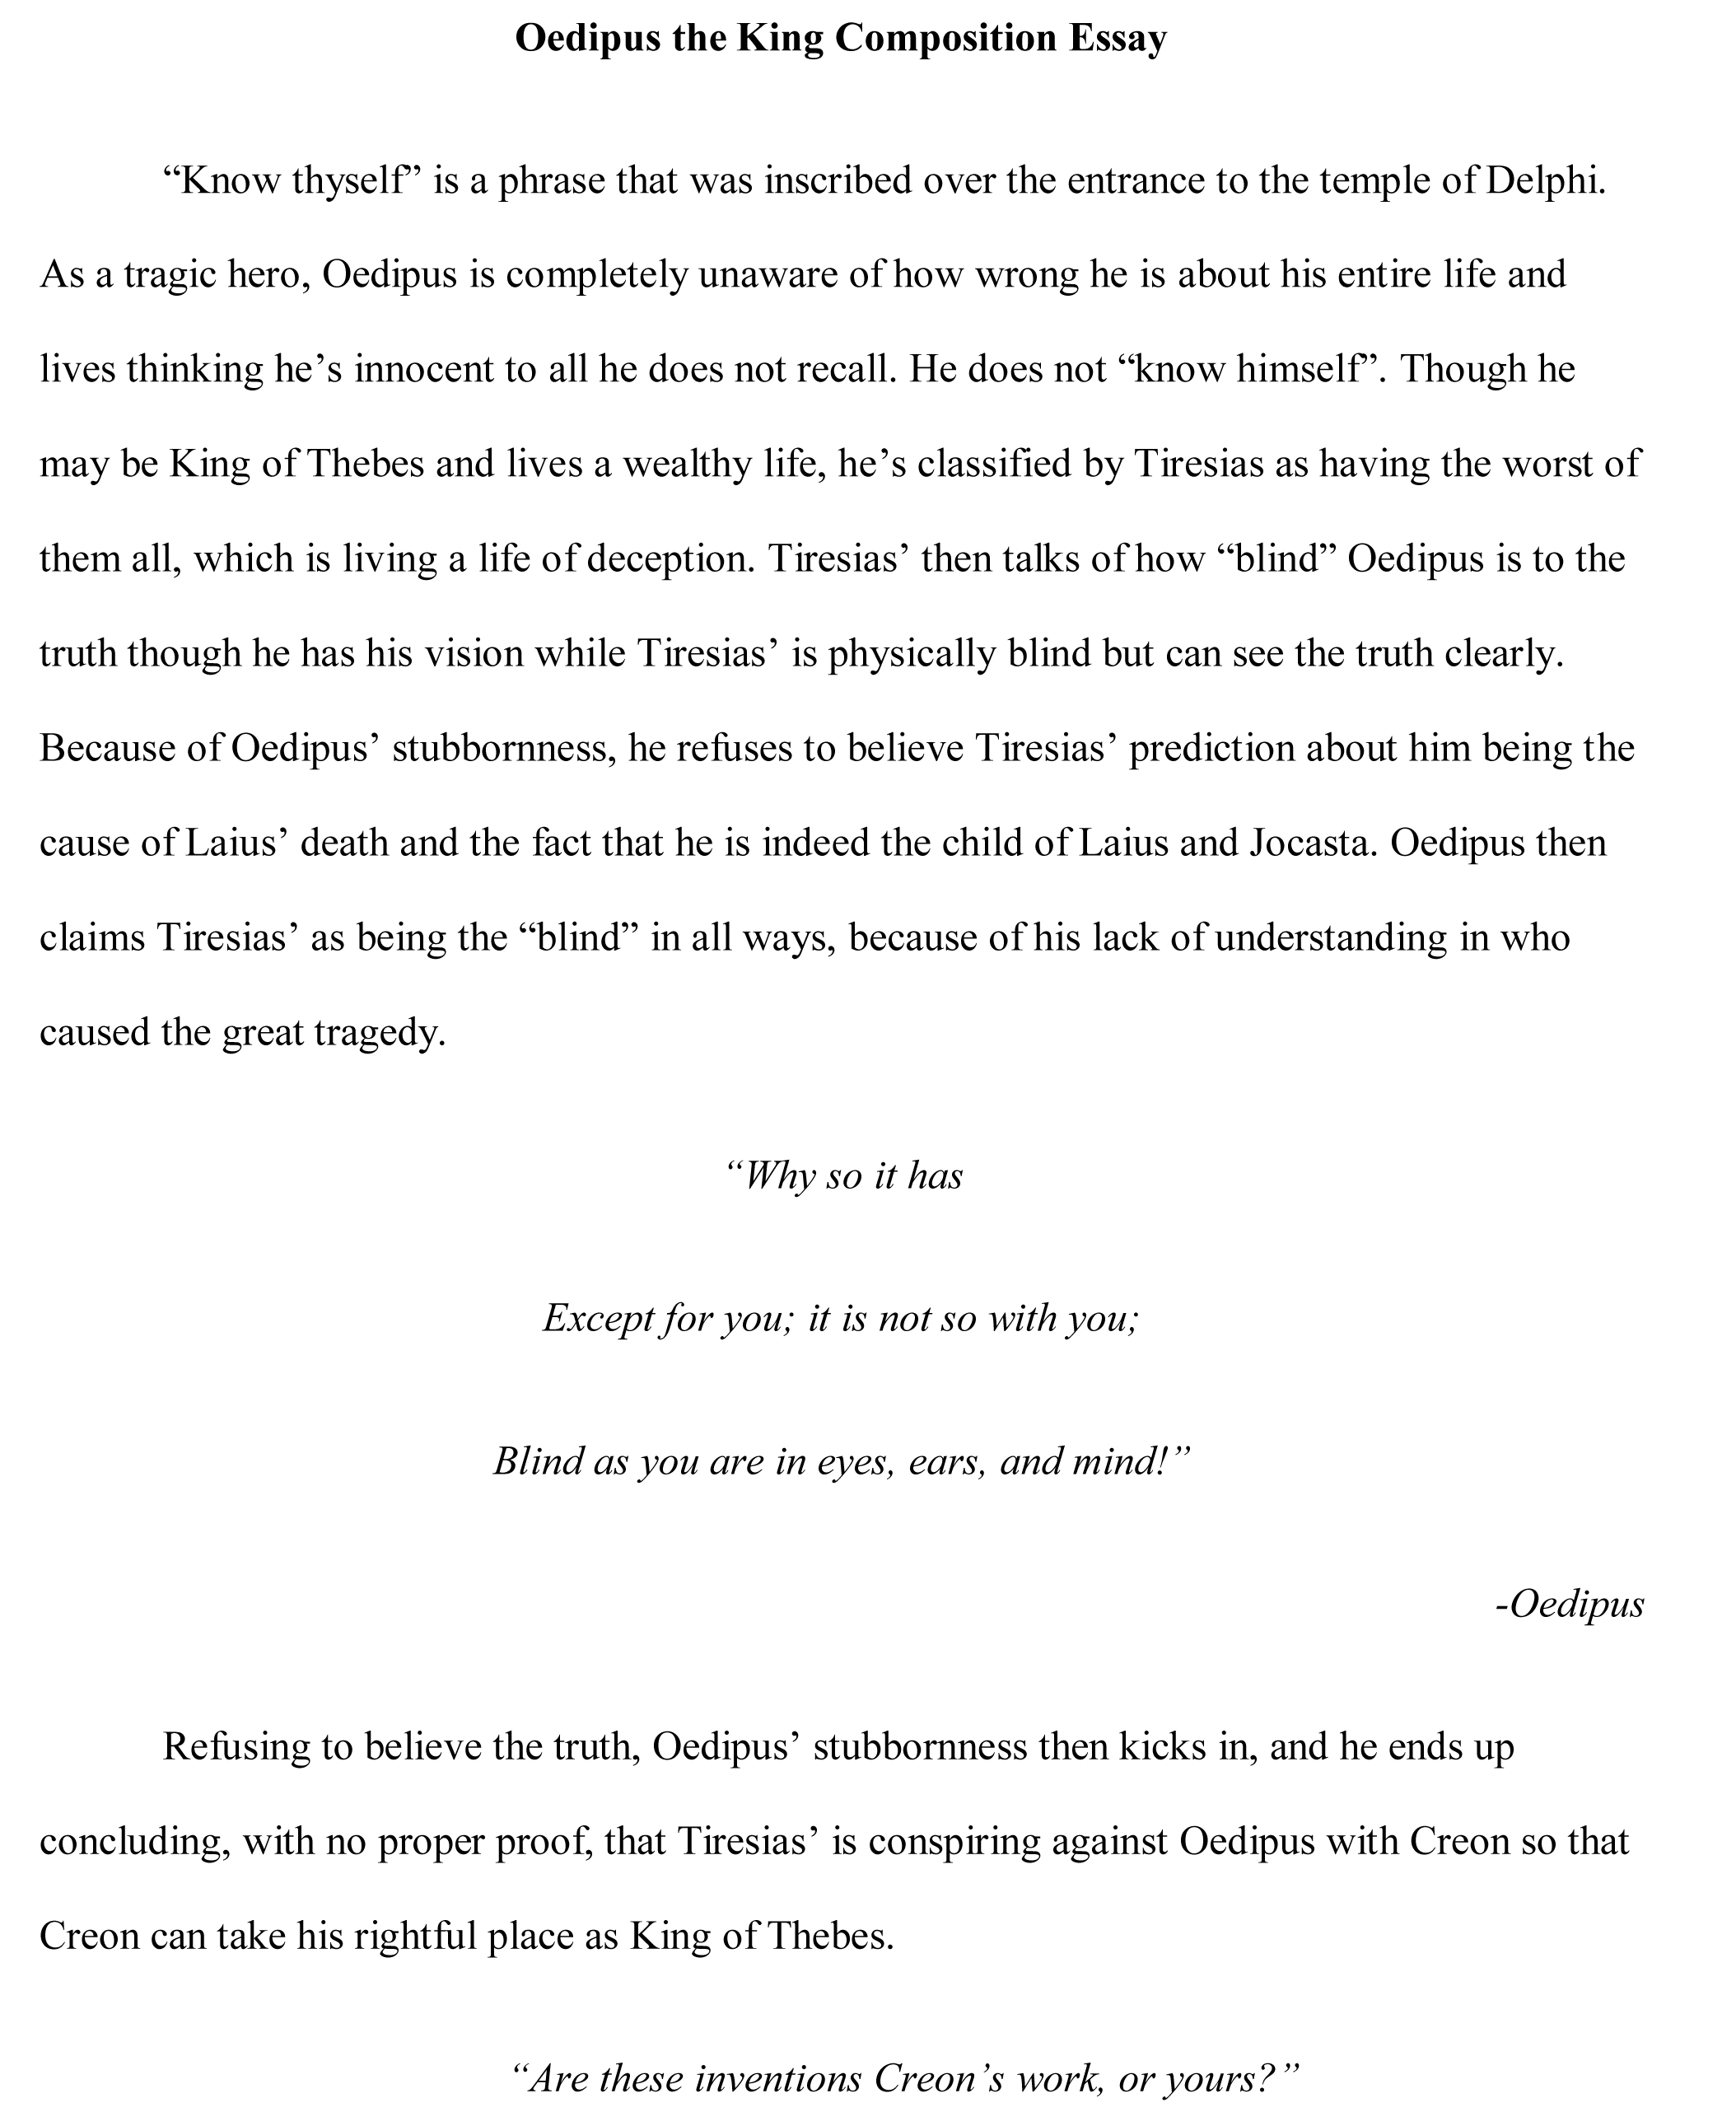 004 Oedipus Essay Free Sample Example Great Fearsome Topics Good For High Schoolers School Students Interesting Middle Full